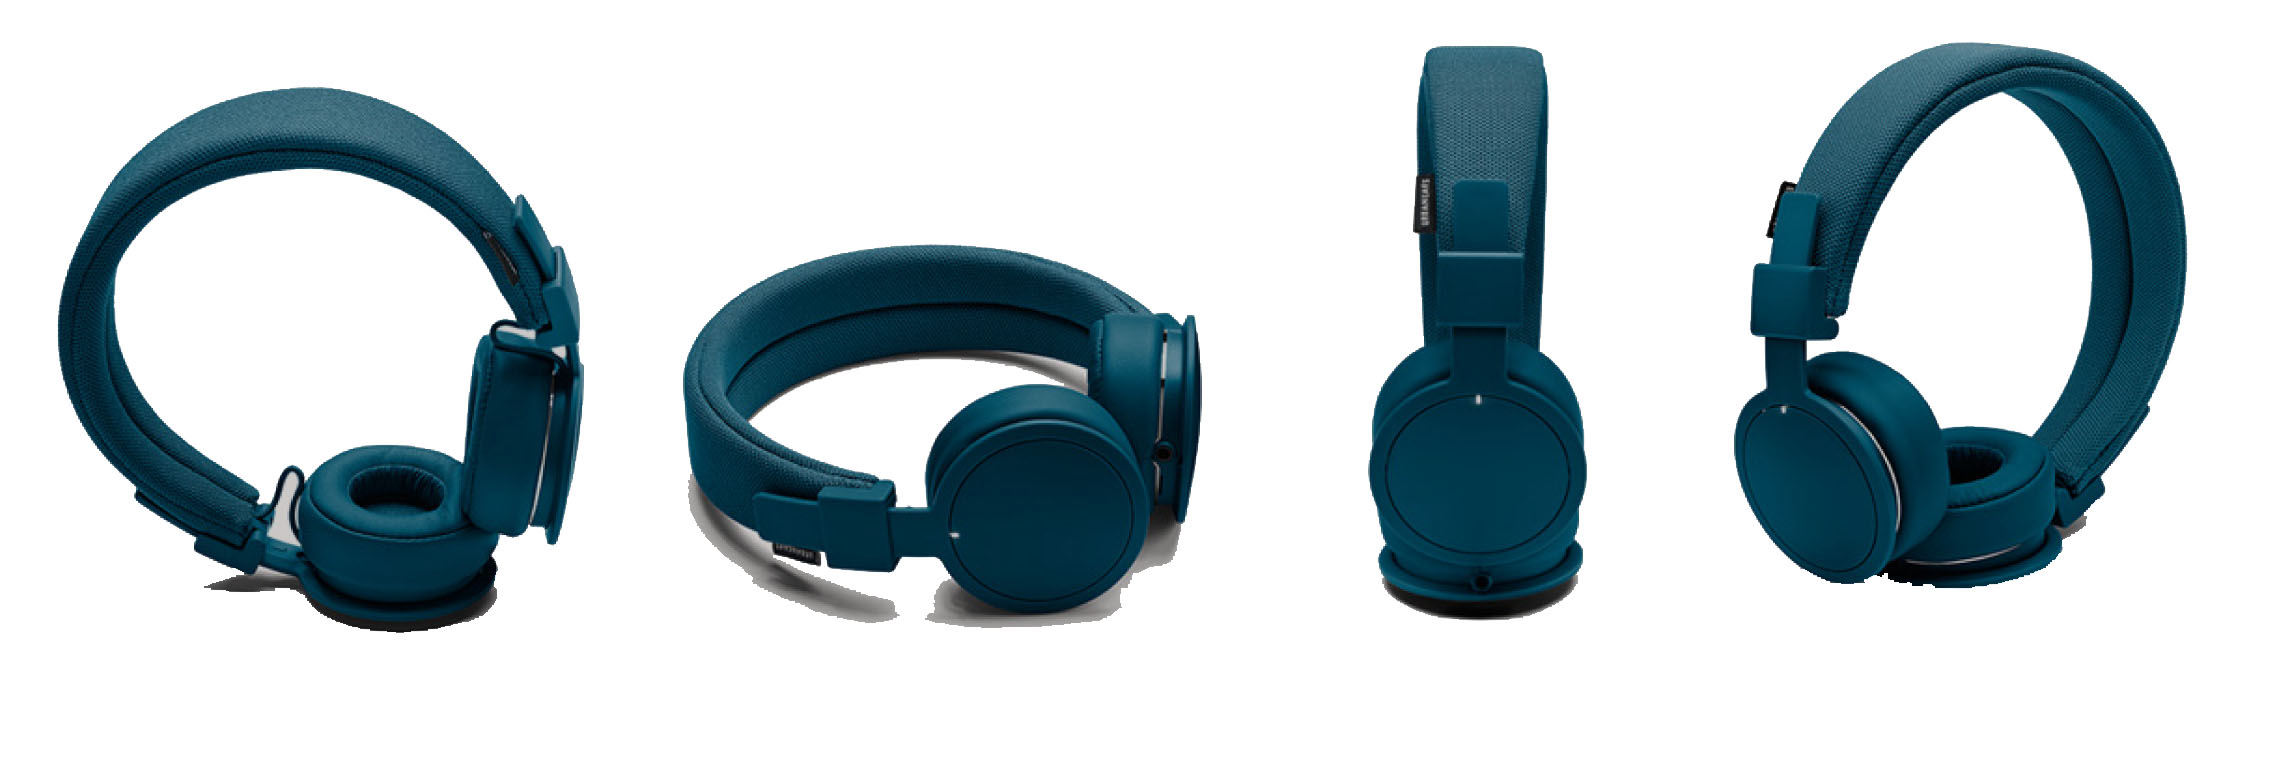 Urbanears-Plattan-ADV-Wireless